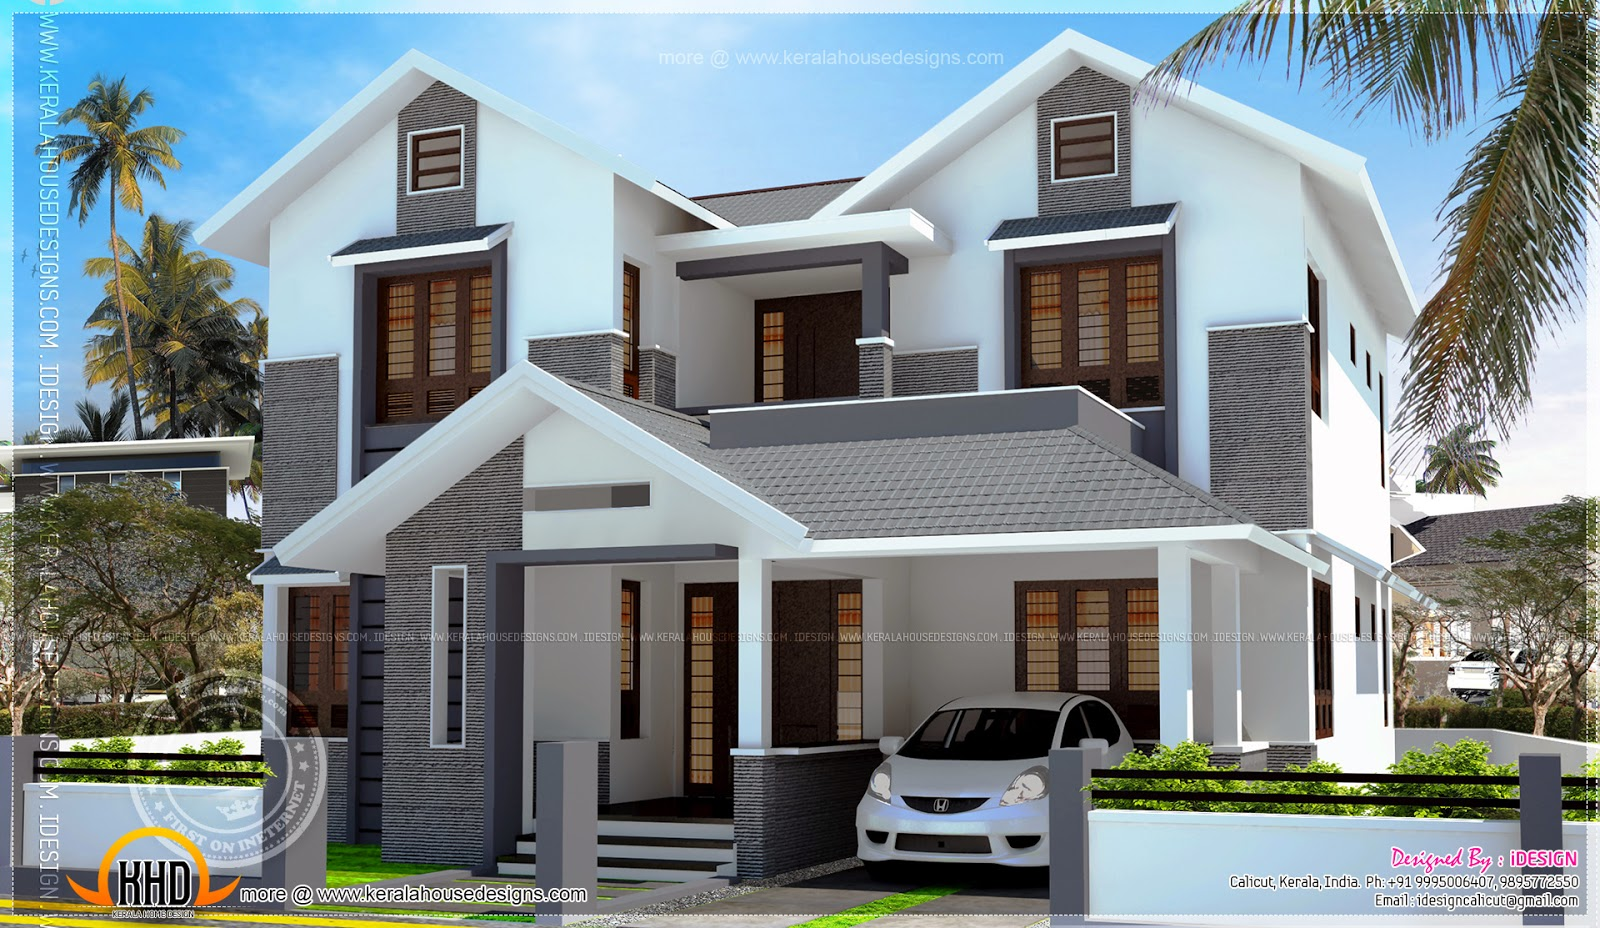 2200 Sq Feet Modern Sloping Roof House With Cost Kerala